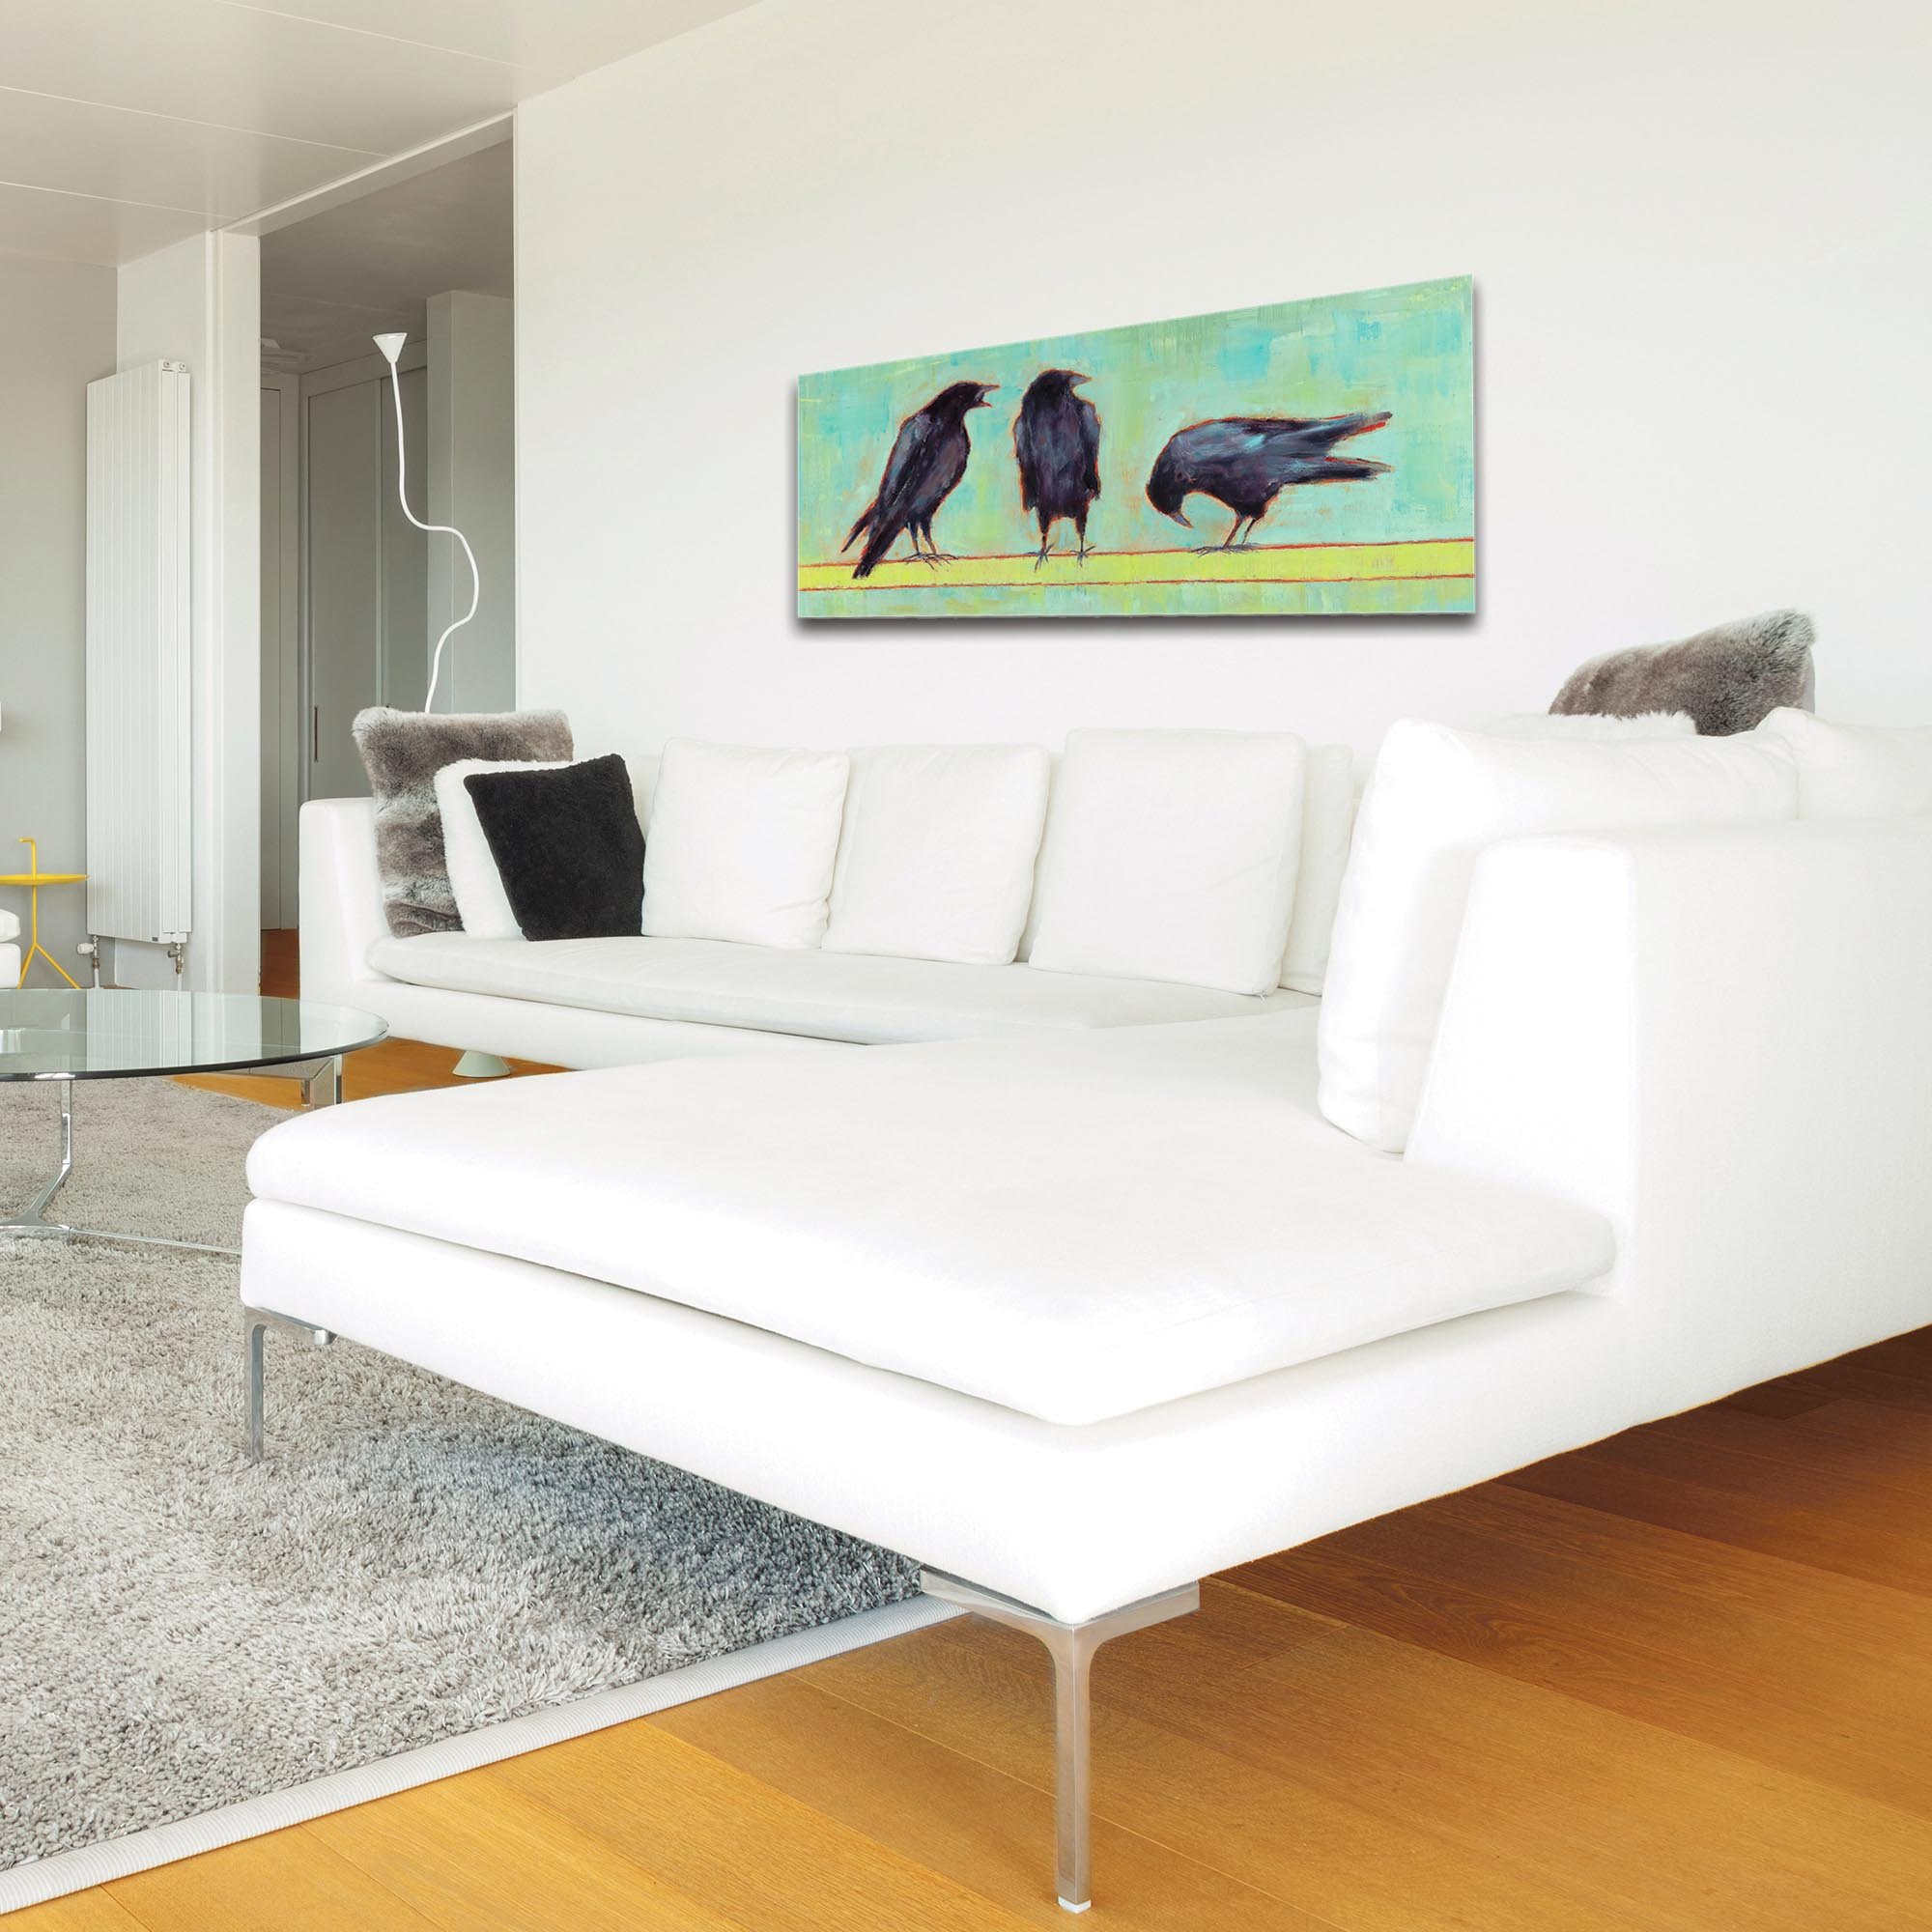 Contemporary Wall Art 'Crow Bar 1 v2' - Urban Birds Decor on Metal or Plexiglass - Image 3